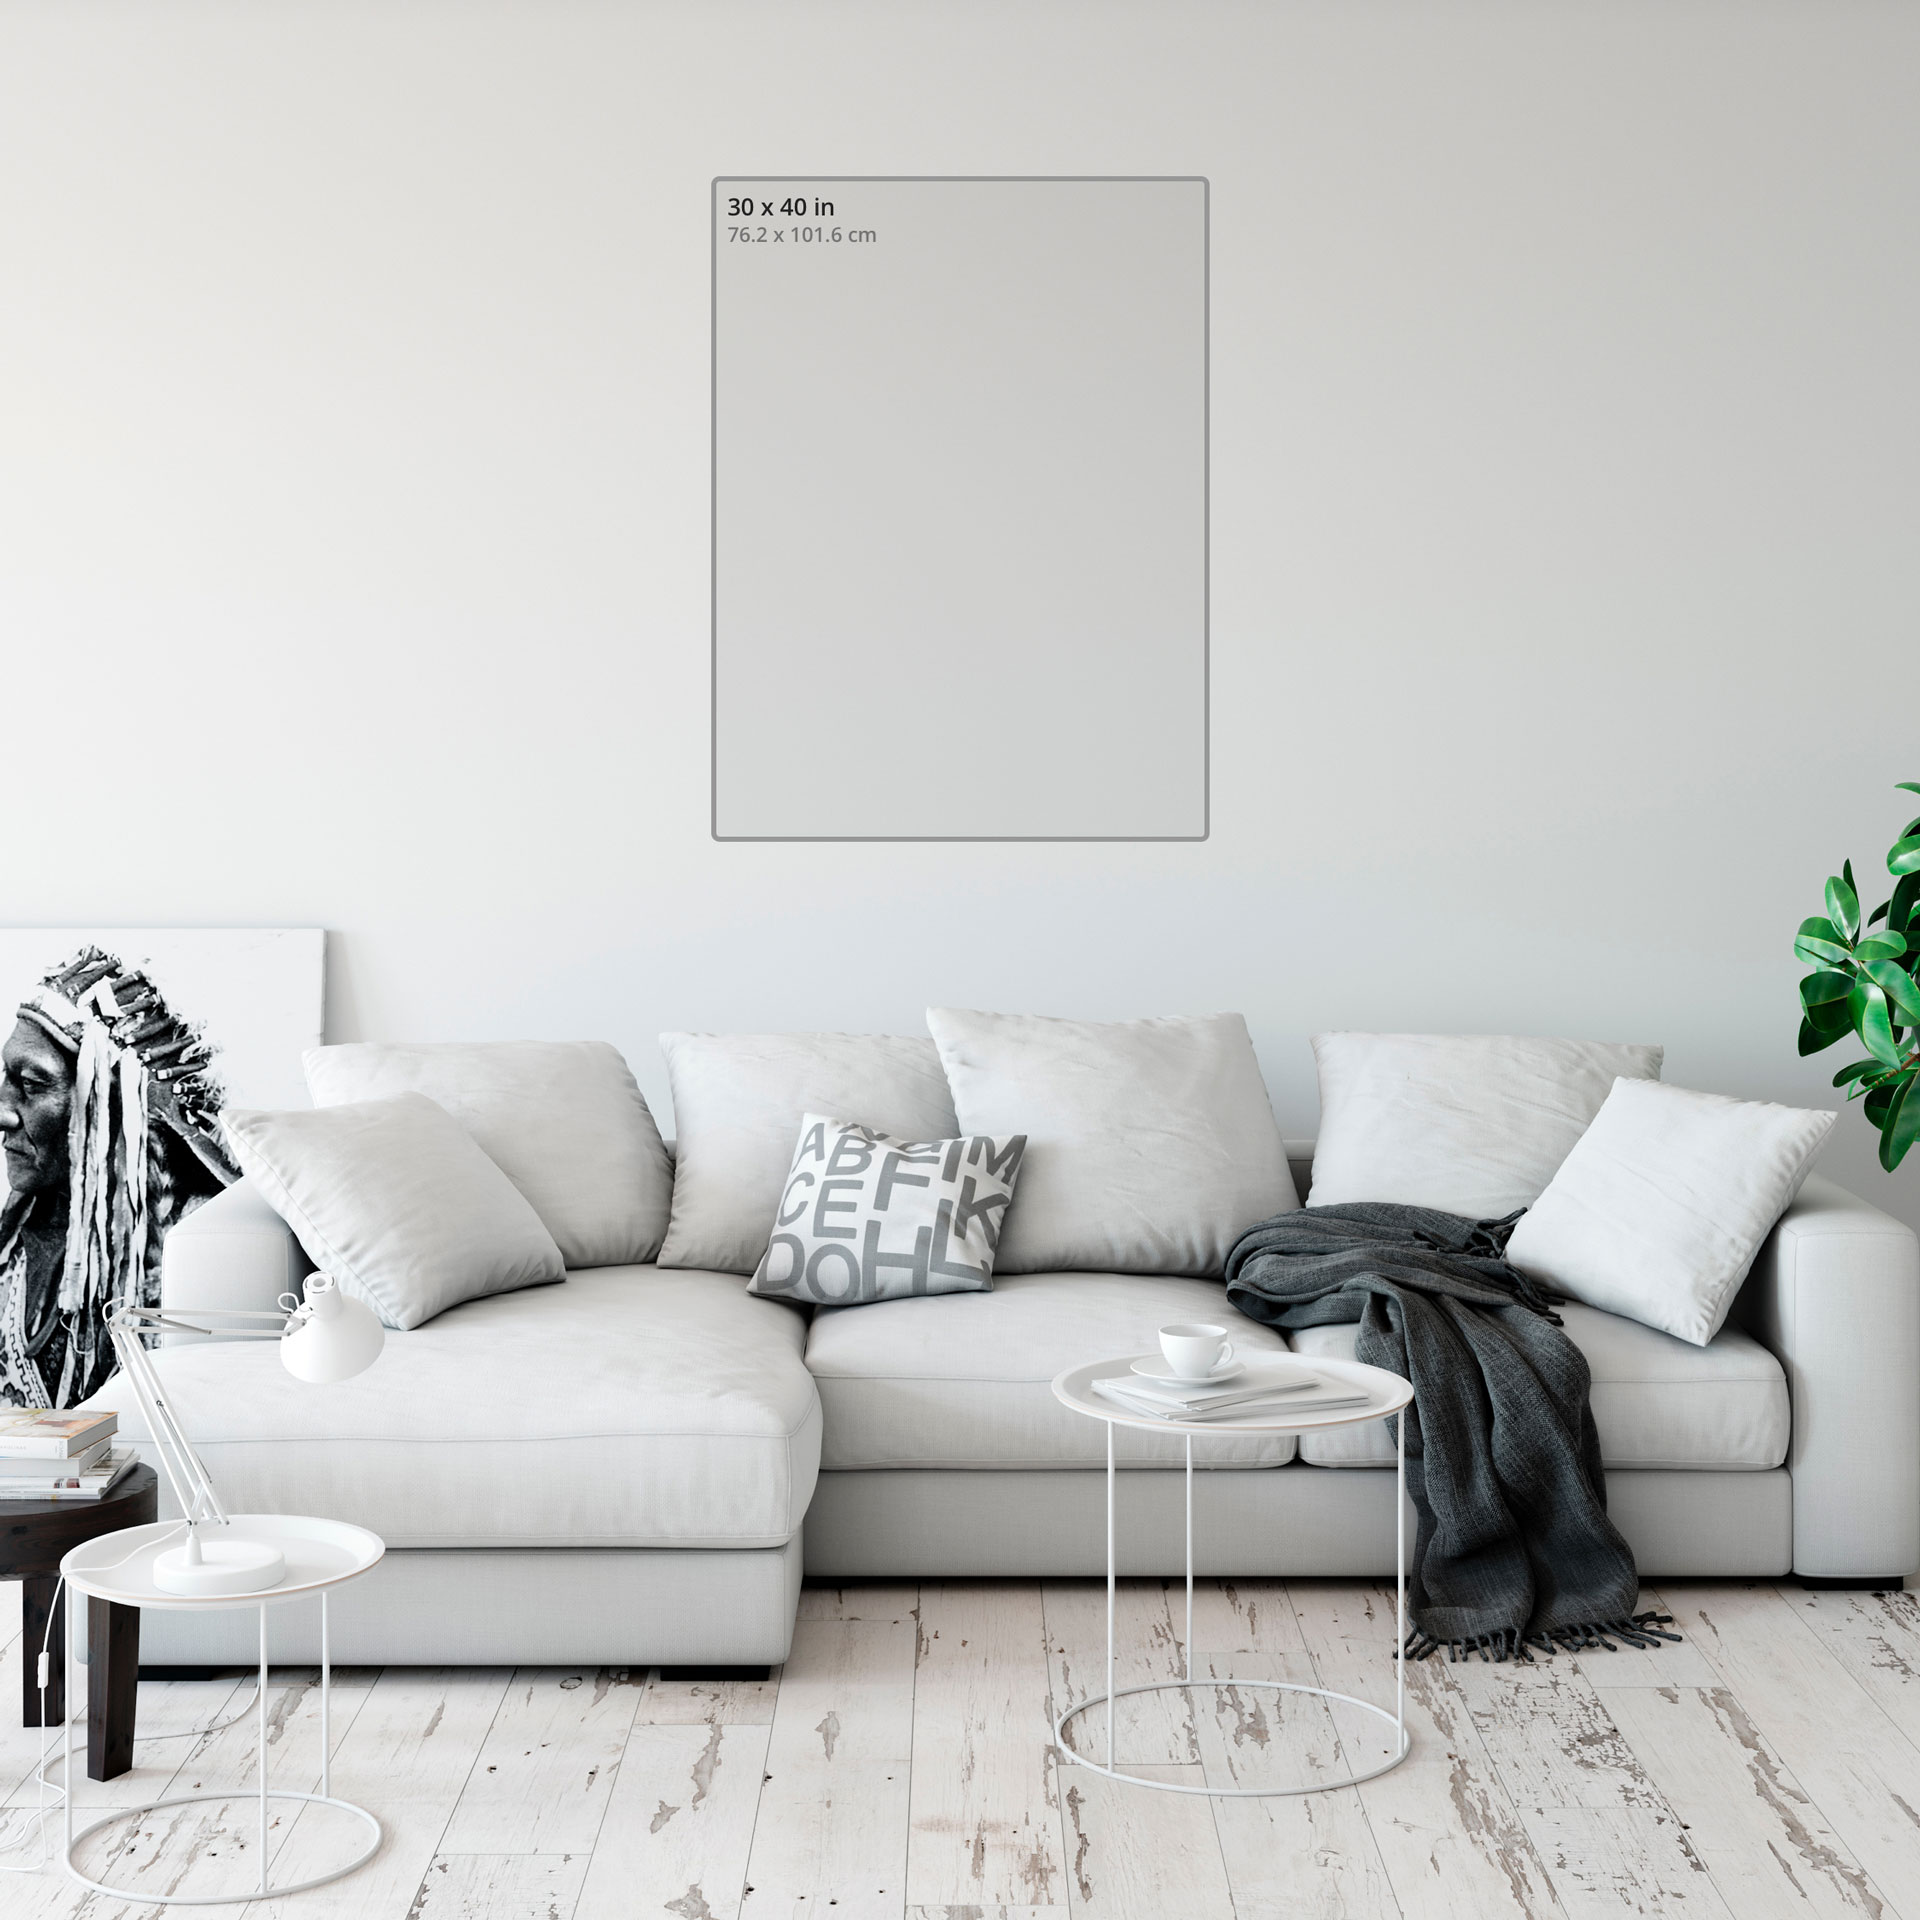 Hd metal print aspect ratio 0.75